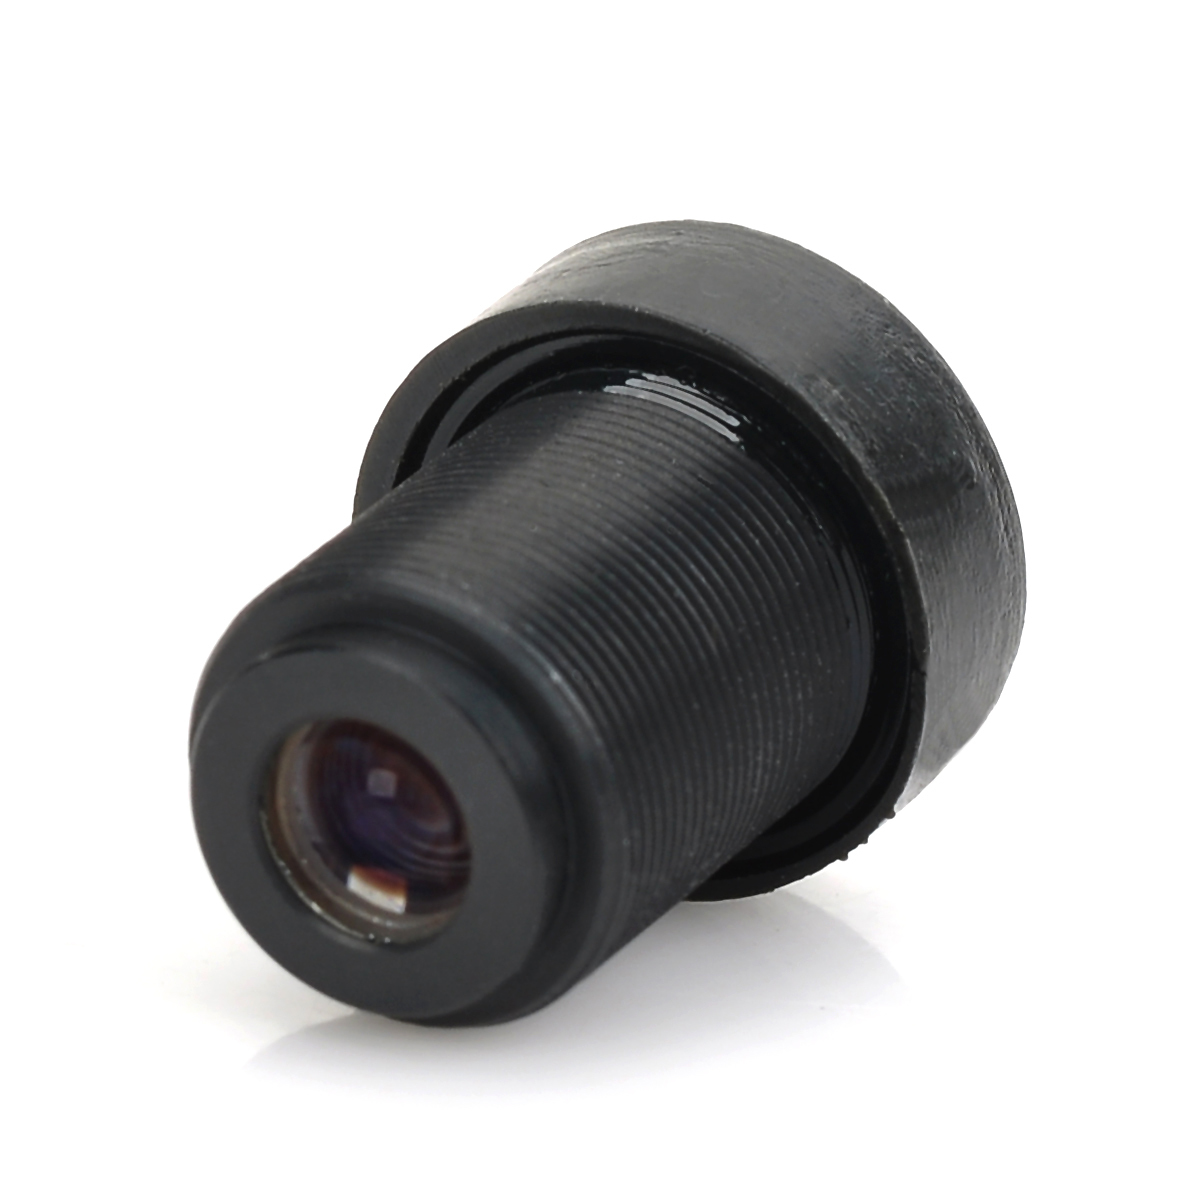 ... Replacement Fixed Iris Wide Angle Lens for CCTV Camera (2.8mm) ...